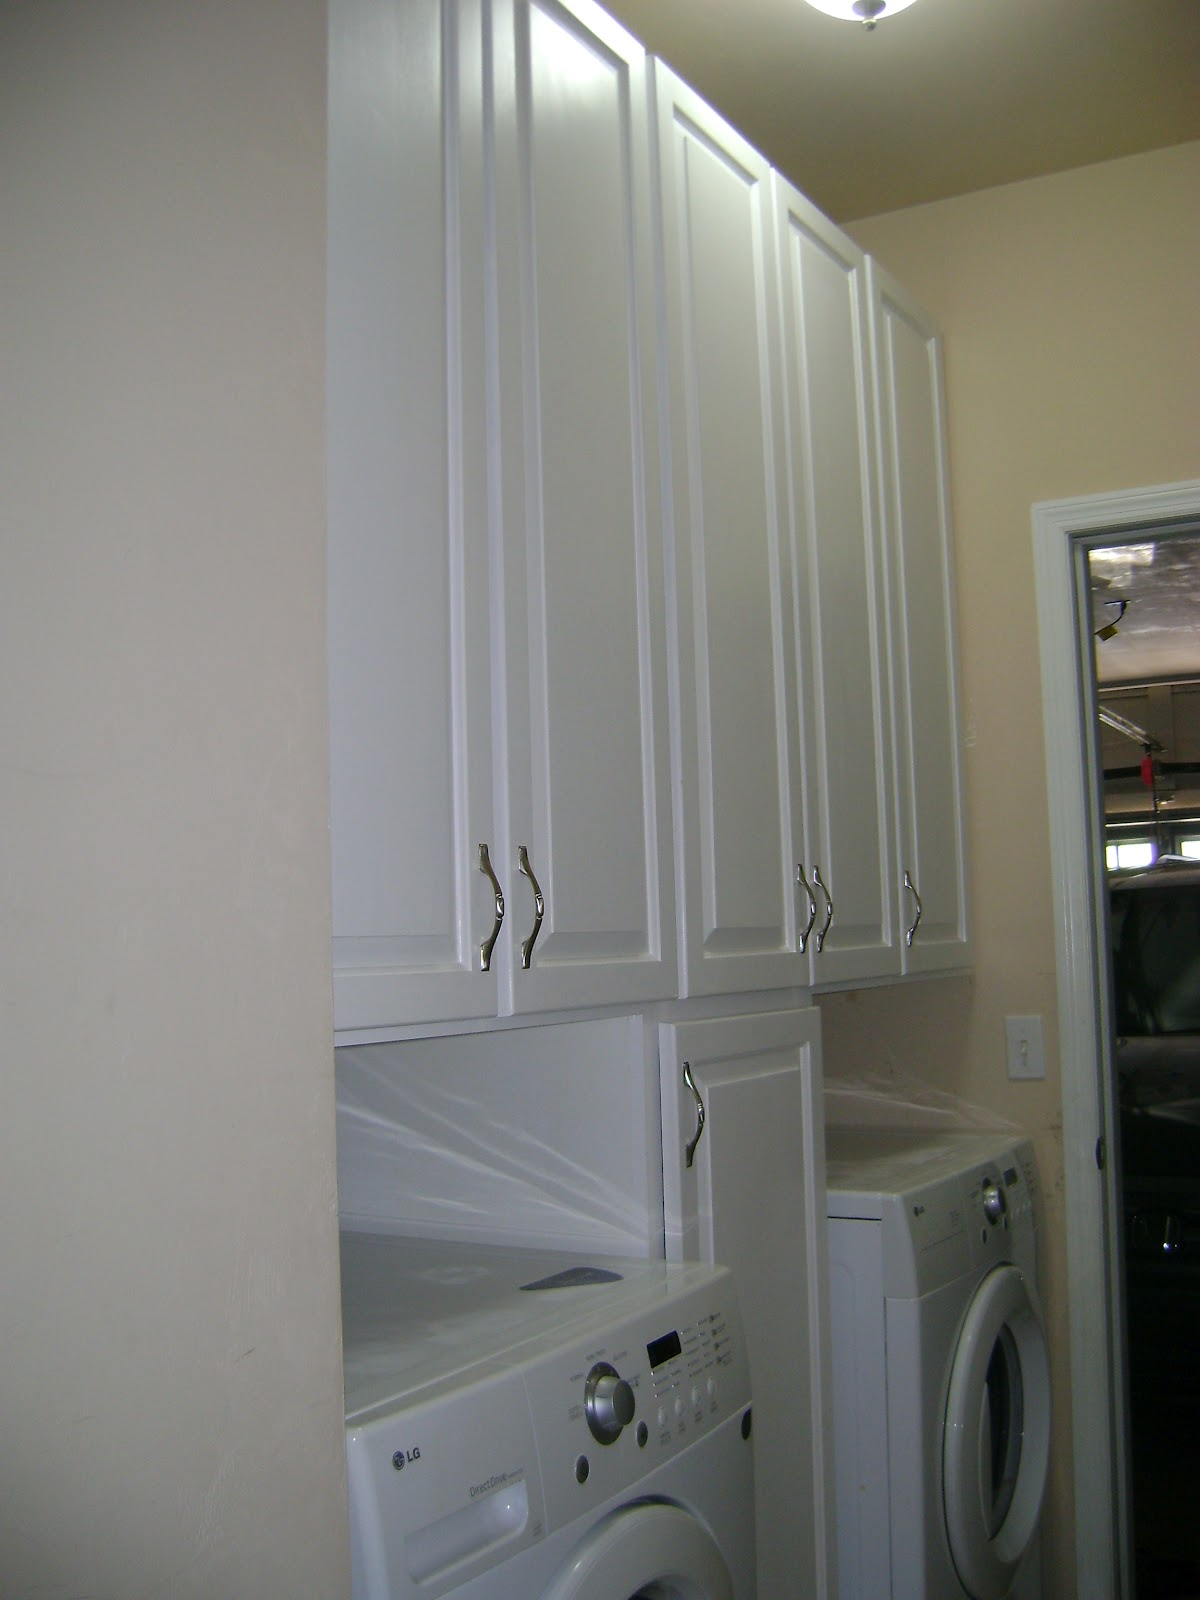 I Love How The Homeowner Wanted The Single Cabinet Between The Washer And  Dryer To Make Use Of That Space As Well.